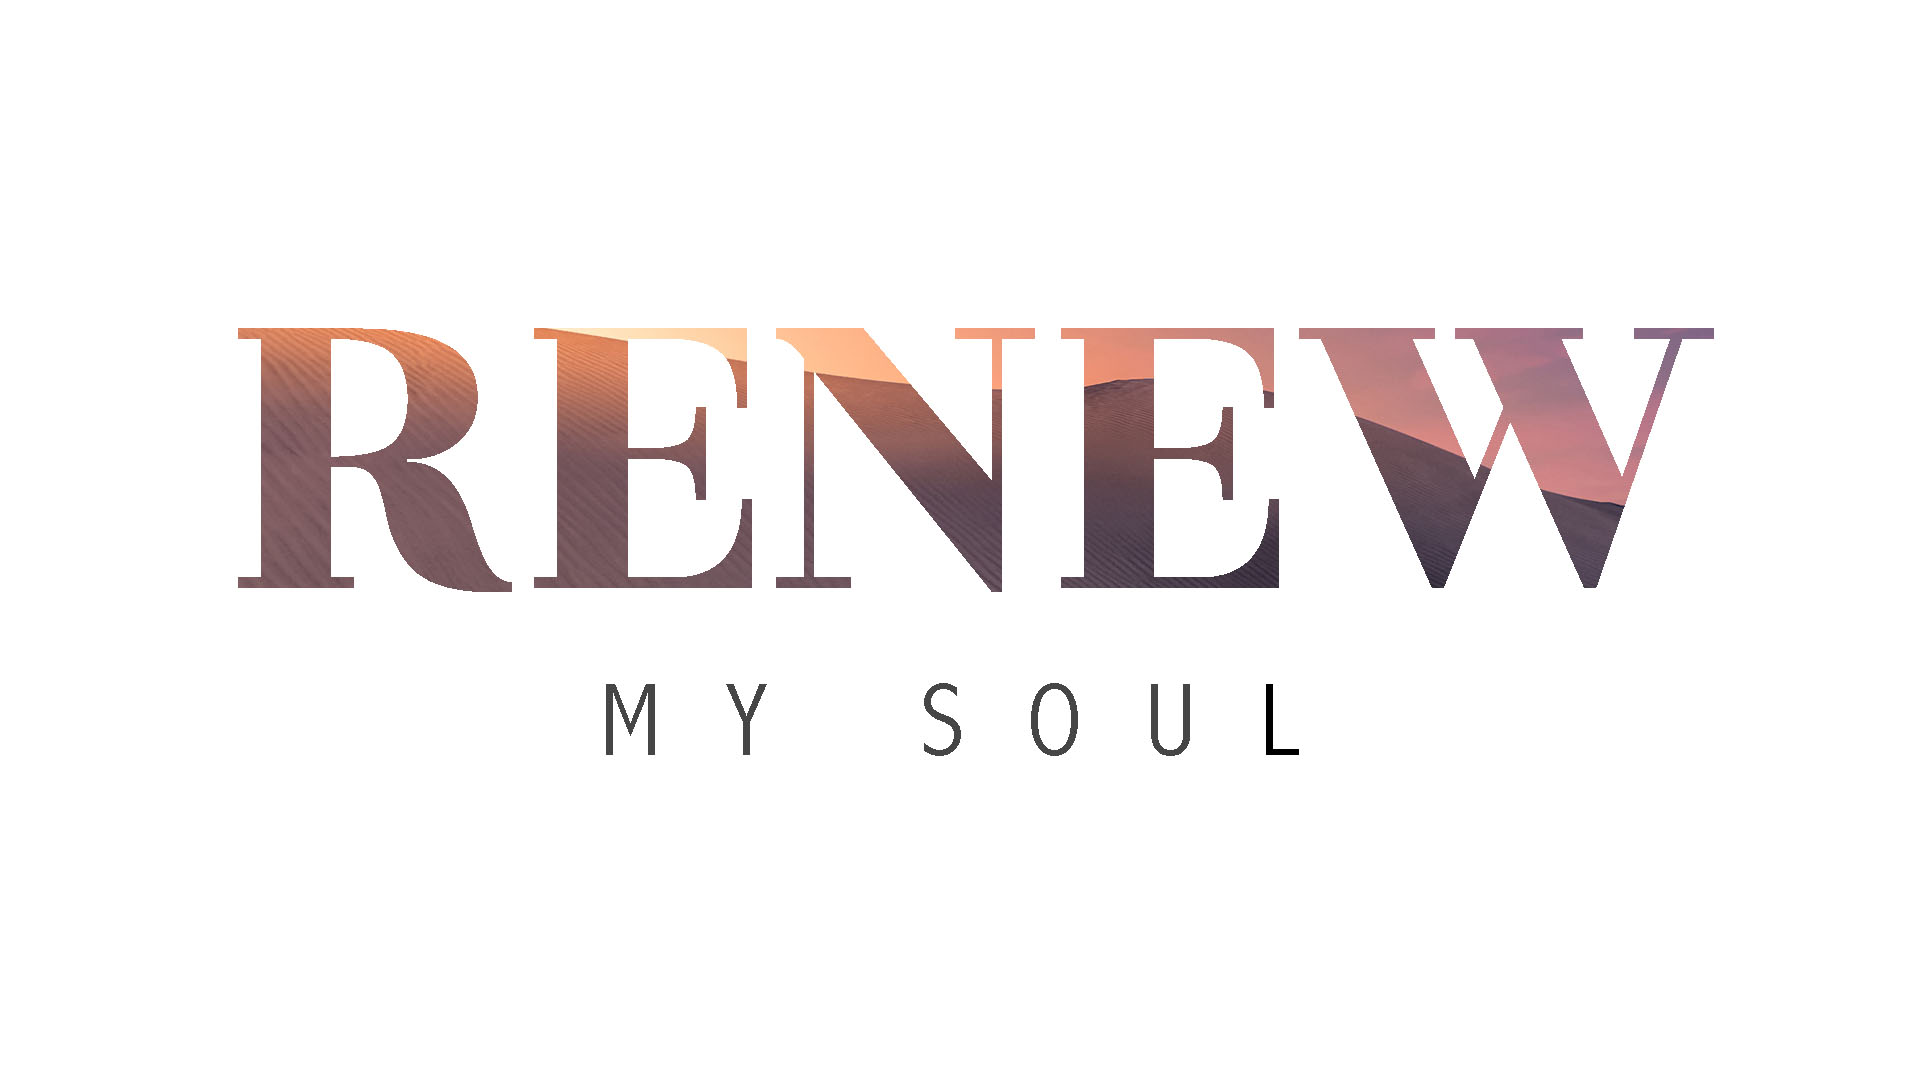 Aug. 16 – Renew My Soul